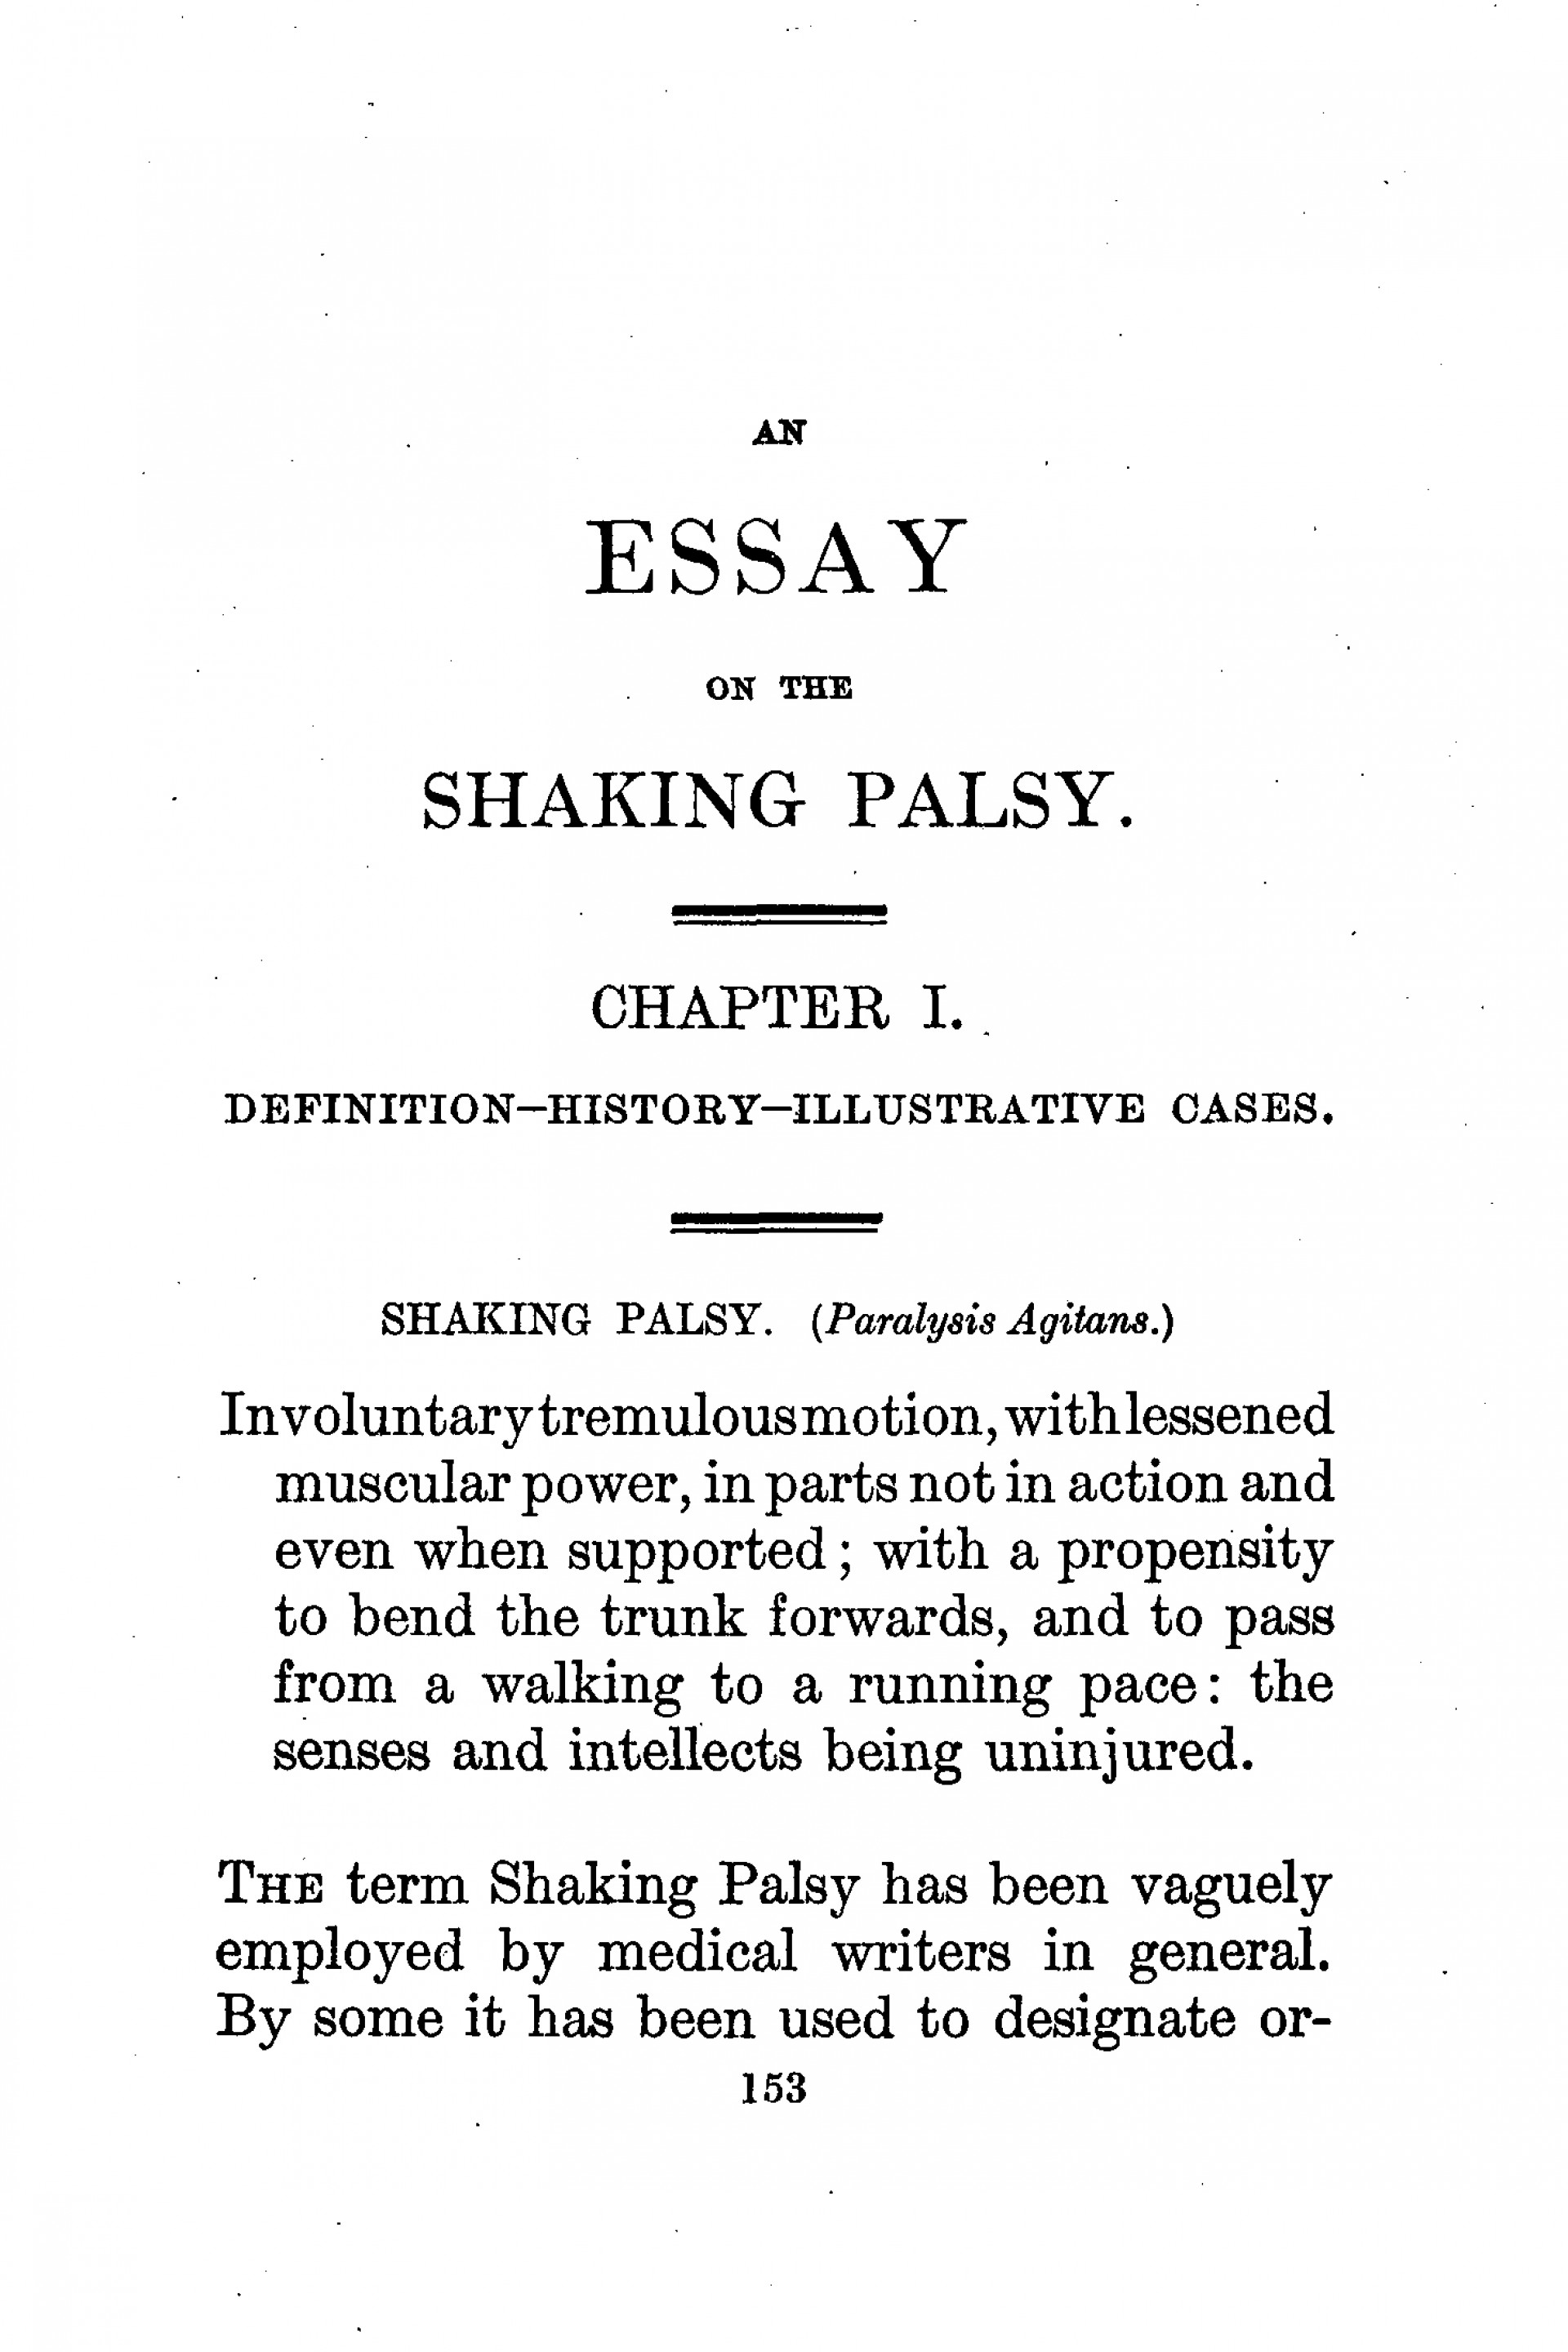 002 Essay On Example Parkinson2c An The Shaking Palsy 28first Page29 Imposing Leadership Development Education Inequality Gun Control Outline 1920